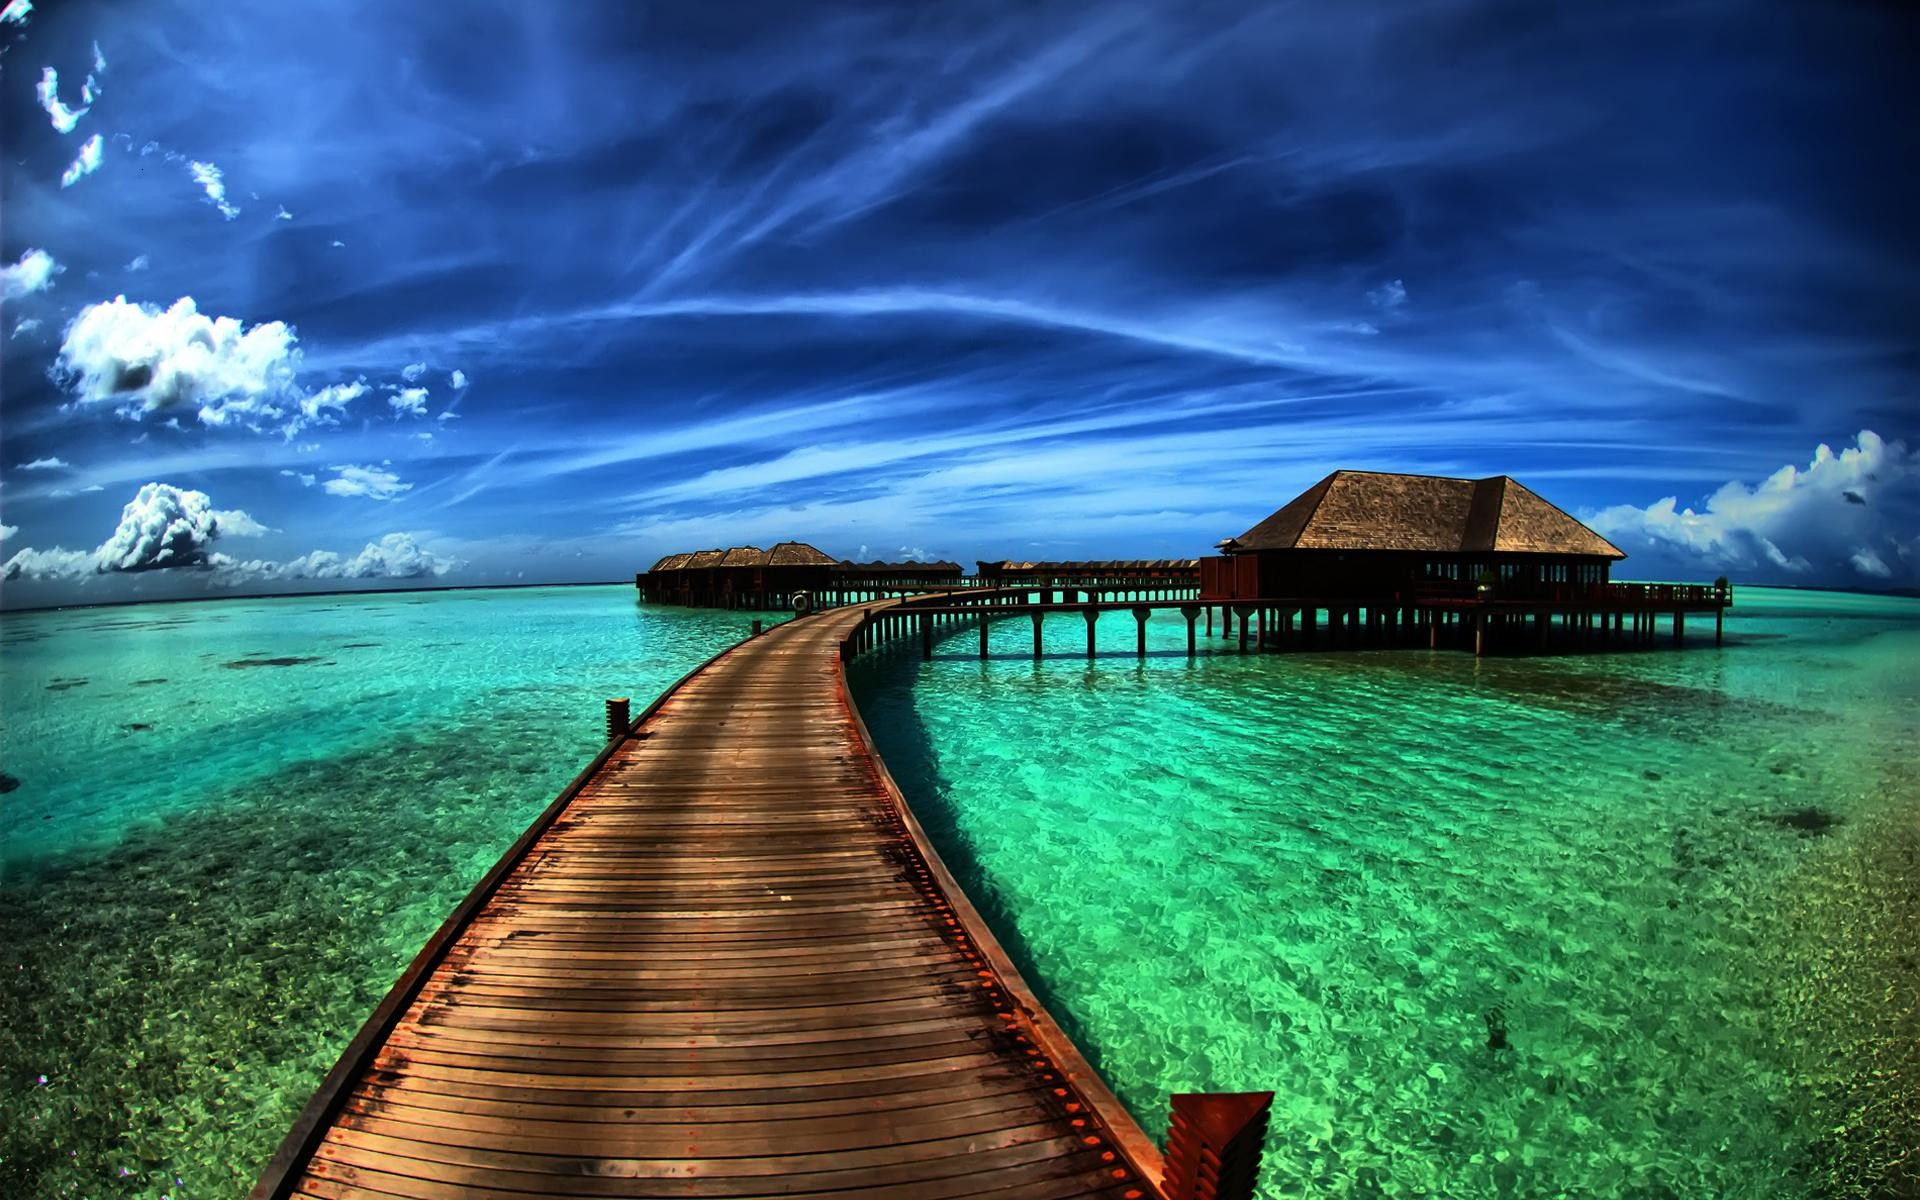 Full Size Wallpapers For Desktop (48+ Images